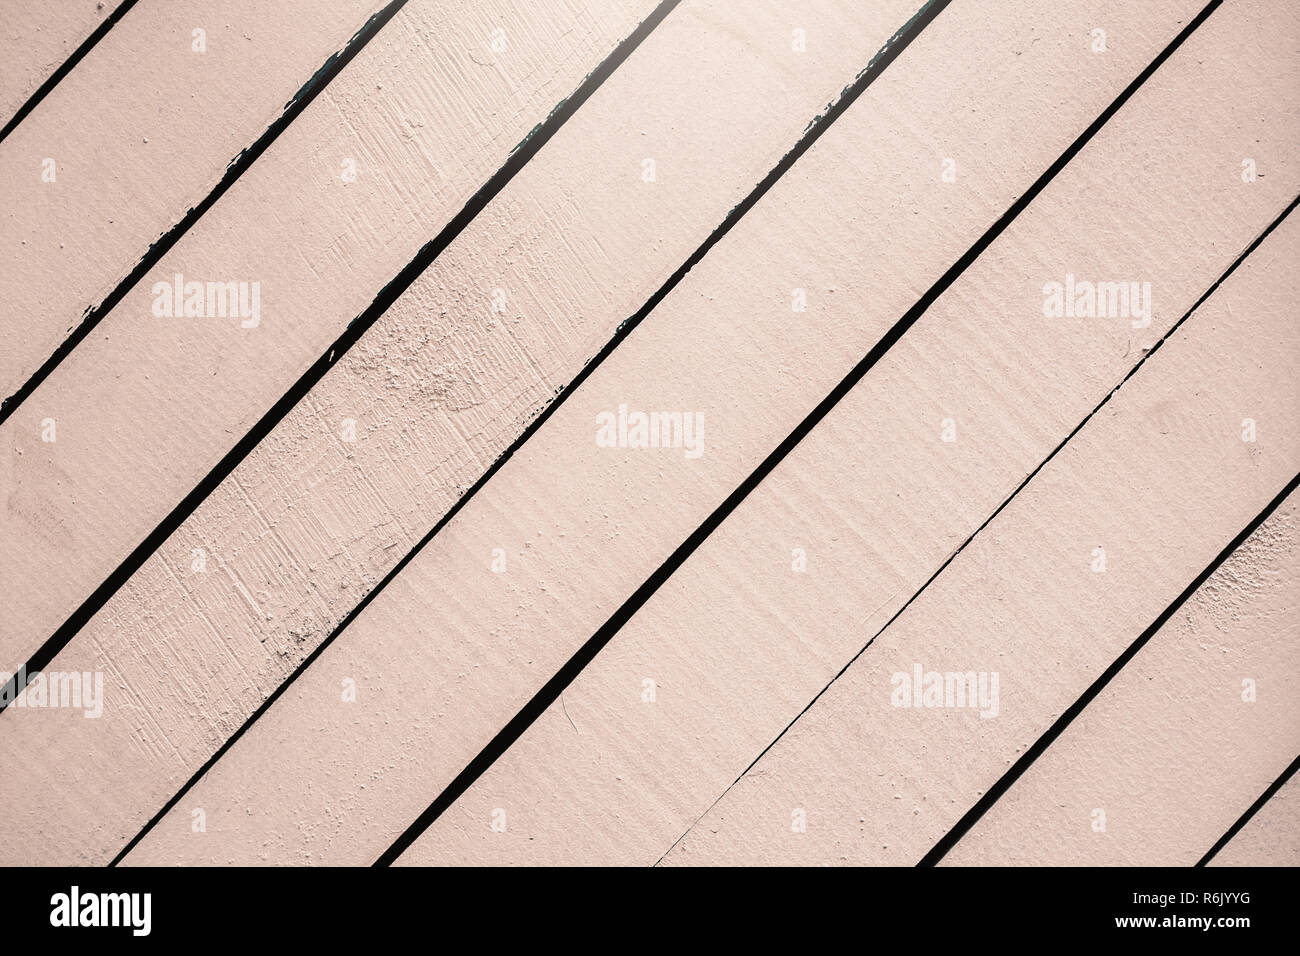 Light pink wooden surface, texture close-up. Rustic natural diagonal planks with cracks, scratches for modern design, patterns, background, copy space - Stock Image